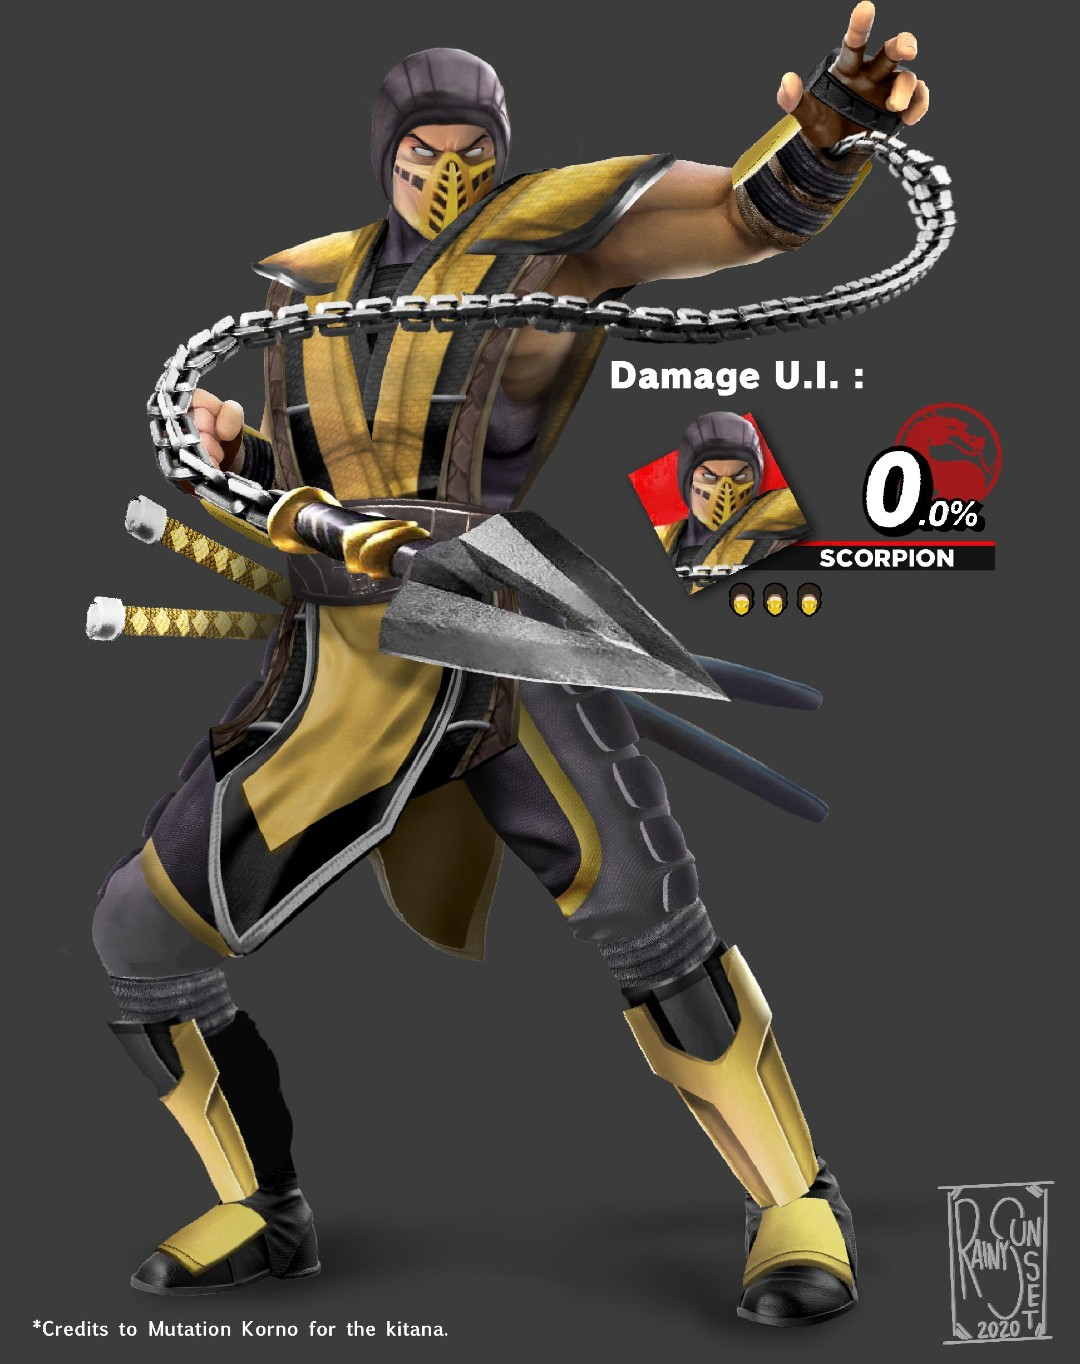 Scorpion Mortal Kombat Super Smash Bros Ultimate